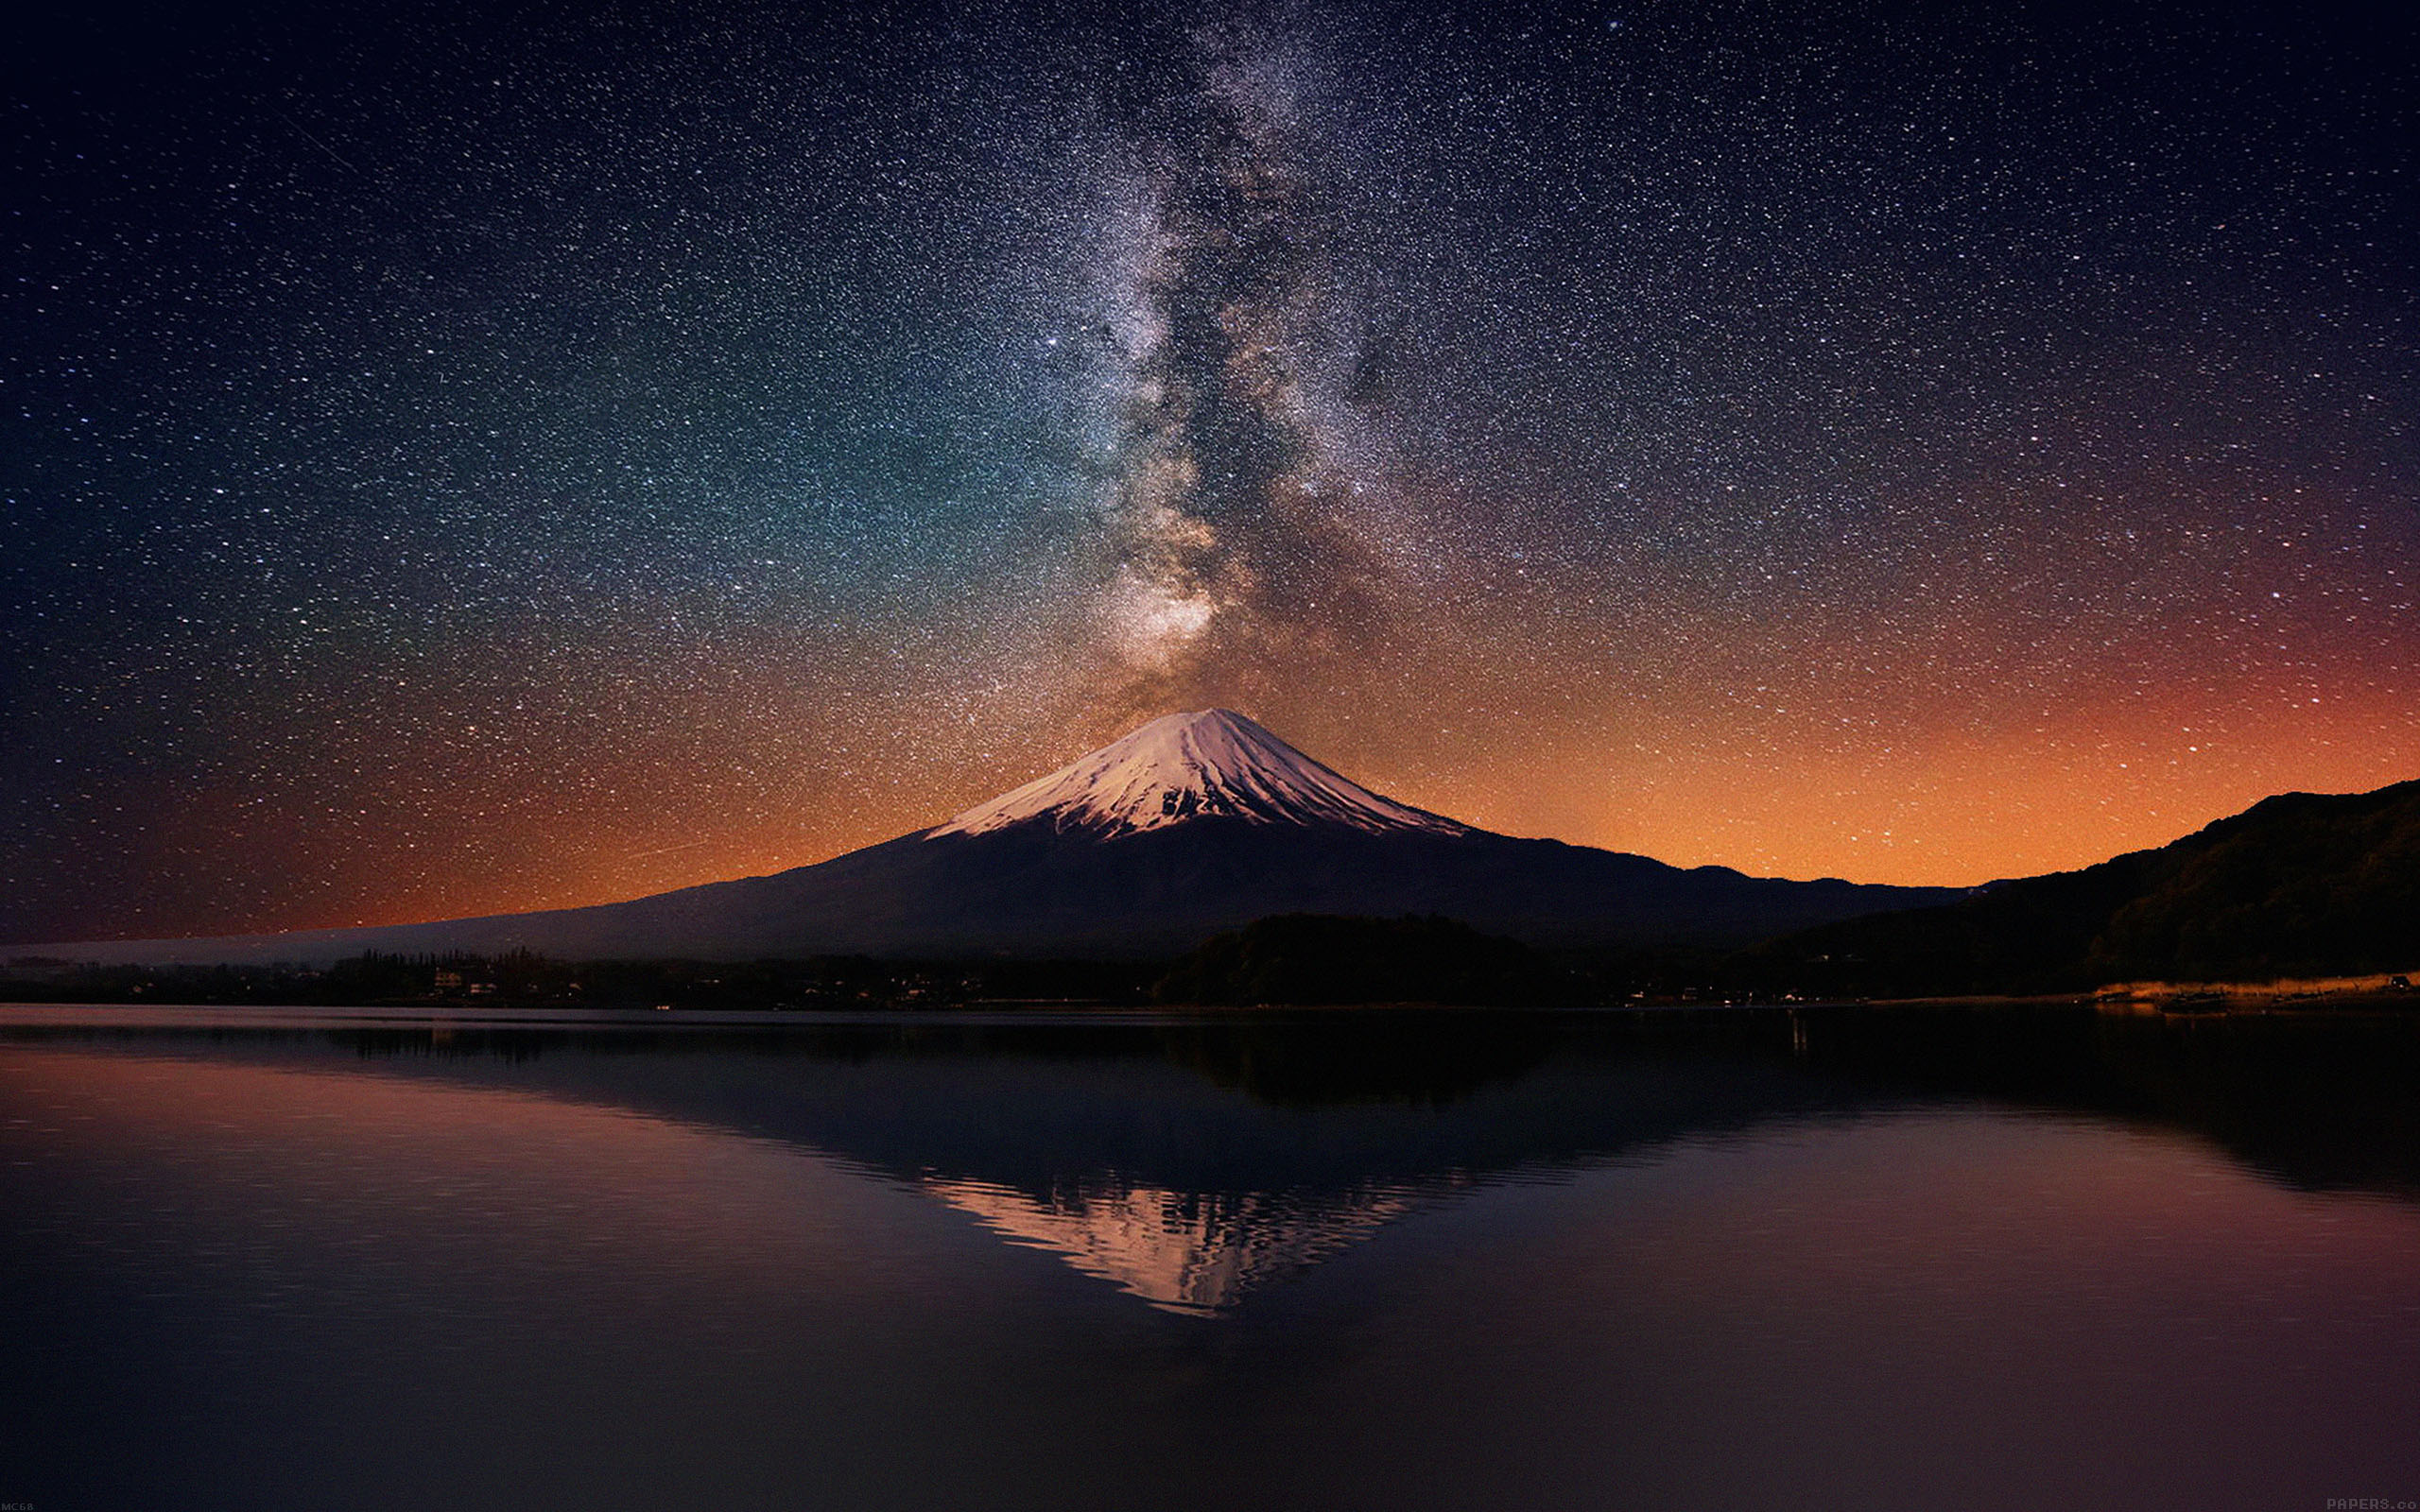 mc68-wallpaper-milky-way-on-mountain-fuji-sky-wallpaper